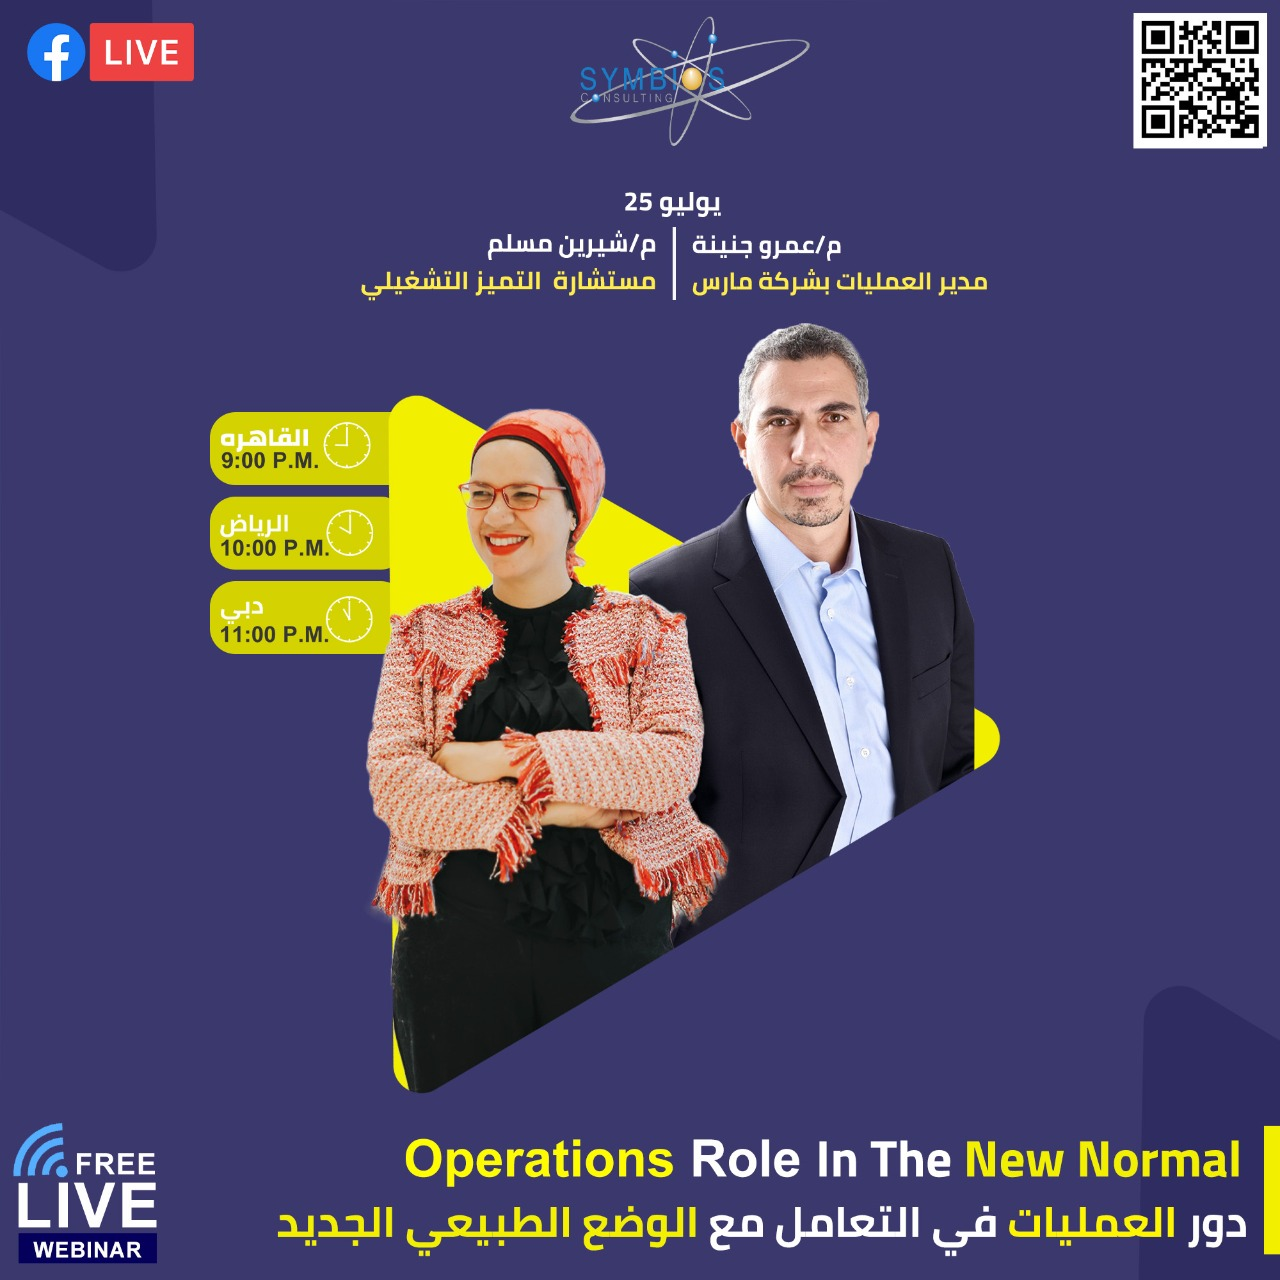 Operations Role in the New Normal